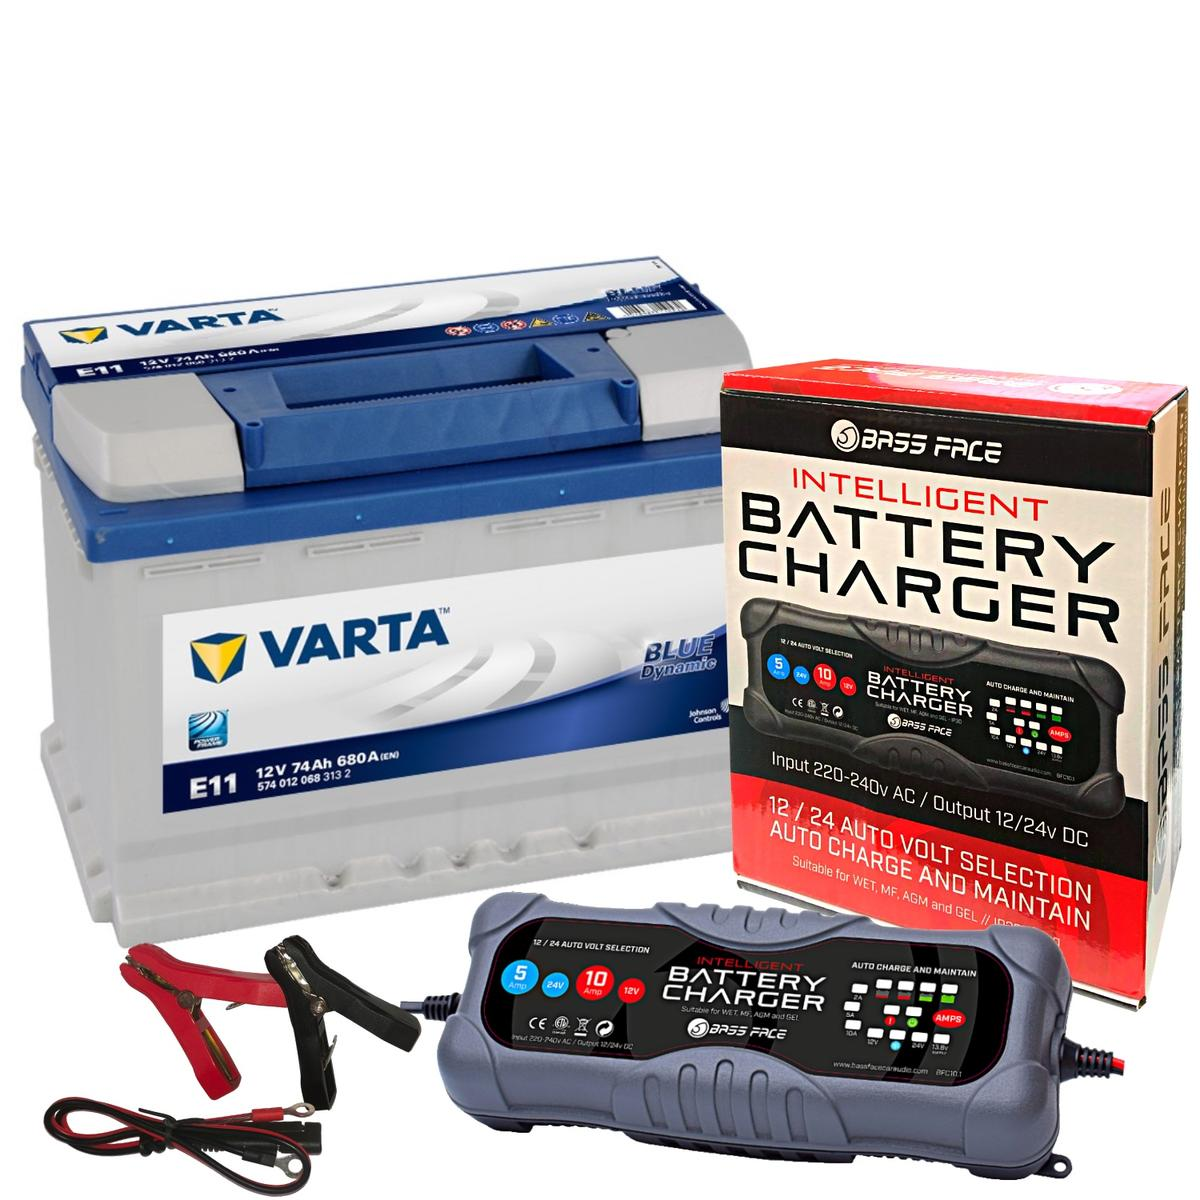 Varta E11 Alfa Audi Car Battery 12v 4 Year 096 74Ah 680CCA W/ 10 Amp Charger